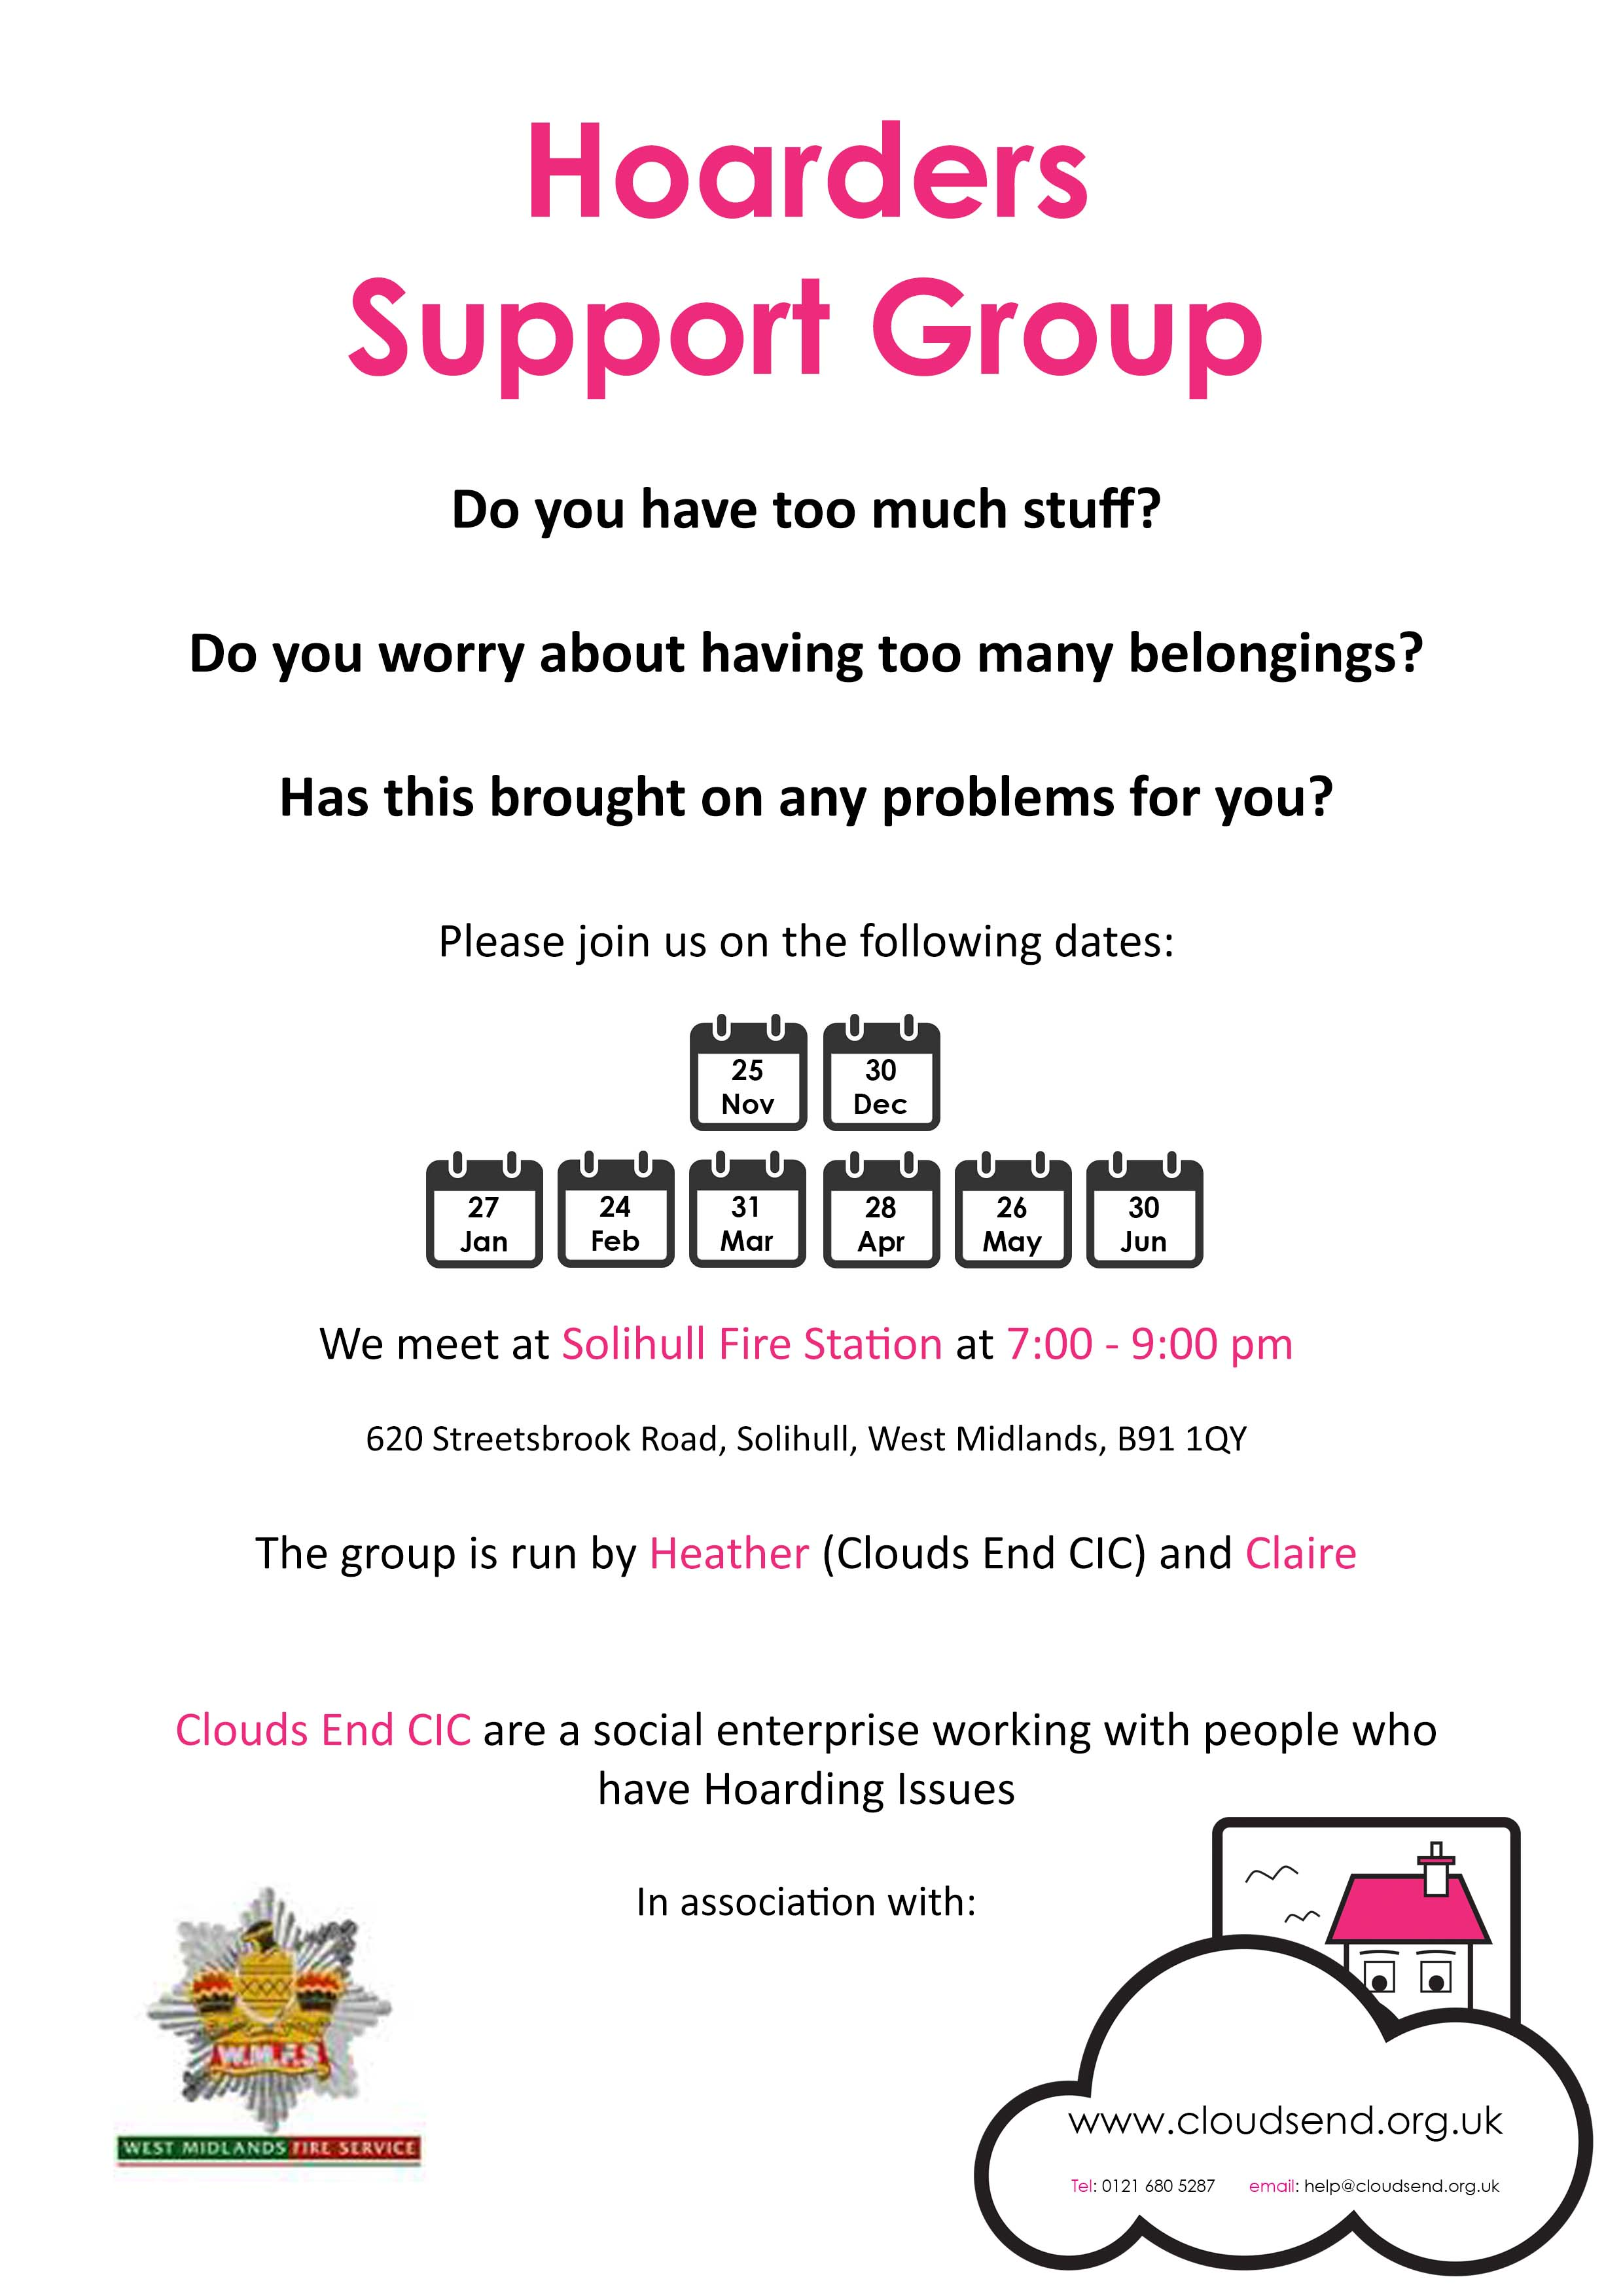 CE - A4 Support Group Poster